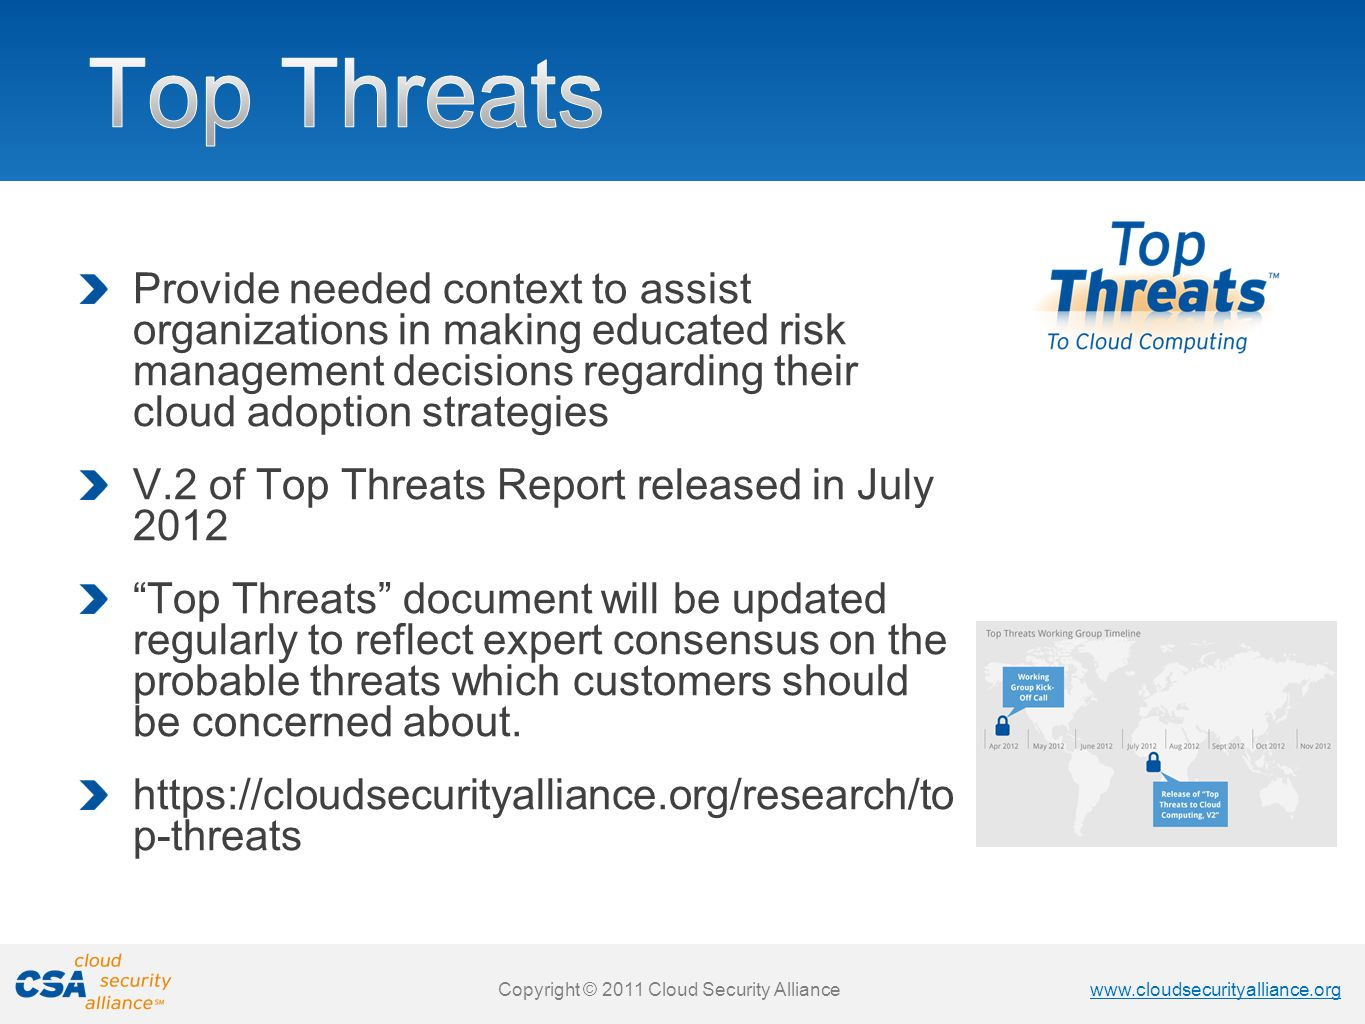 Top Threats Provide needed context to assist organizations in making educated risk management decisions regarding their cloud adoption strategies.